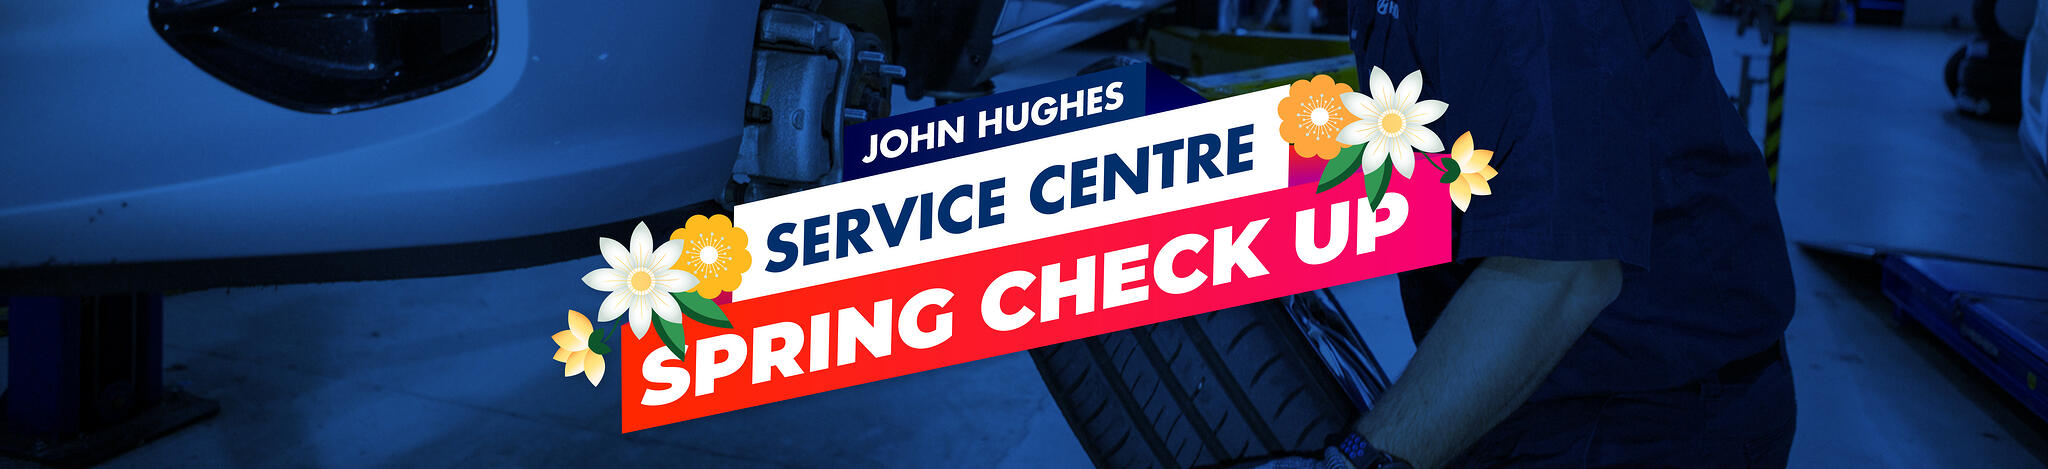 JH_service-spring-check-up_landing-page2